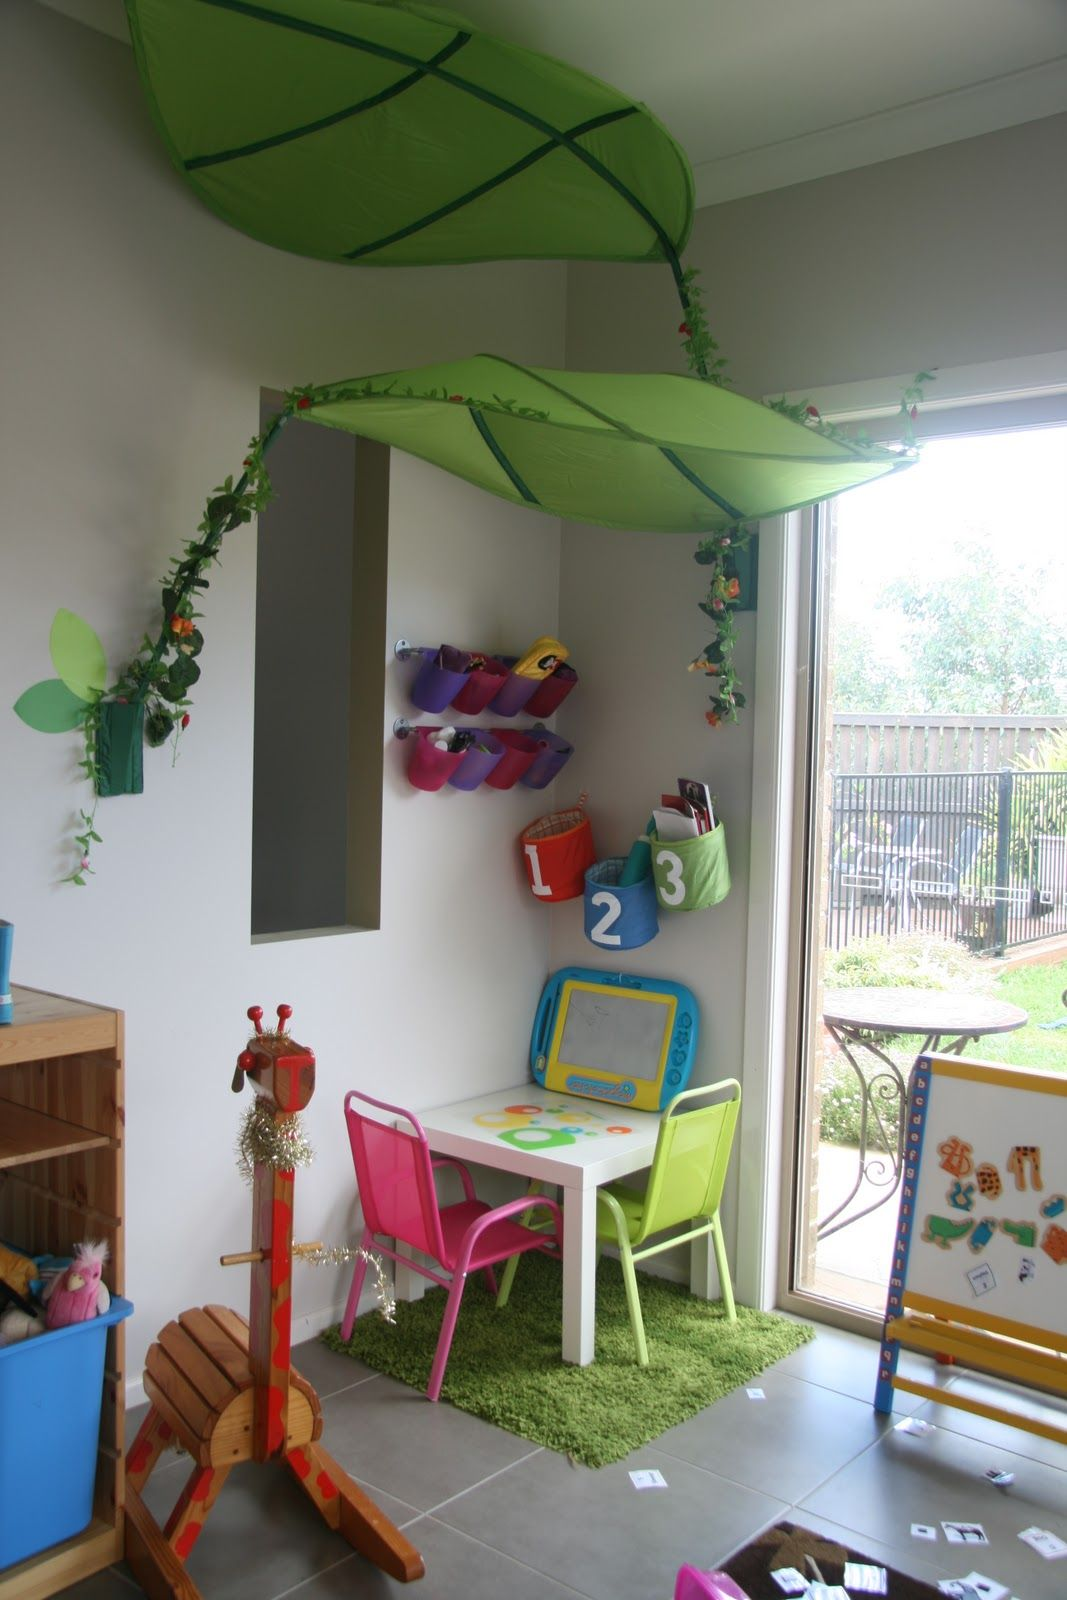 Lova Bed Canopy Green Google Search Ikea Kids Room Big Boy Room Kids Room